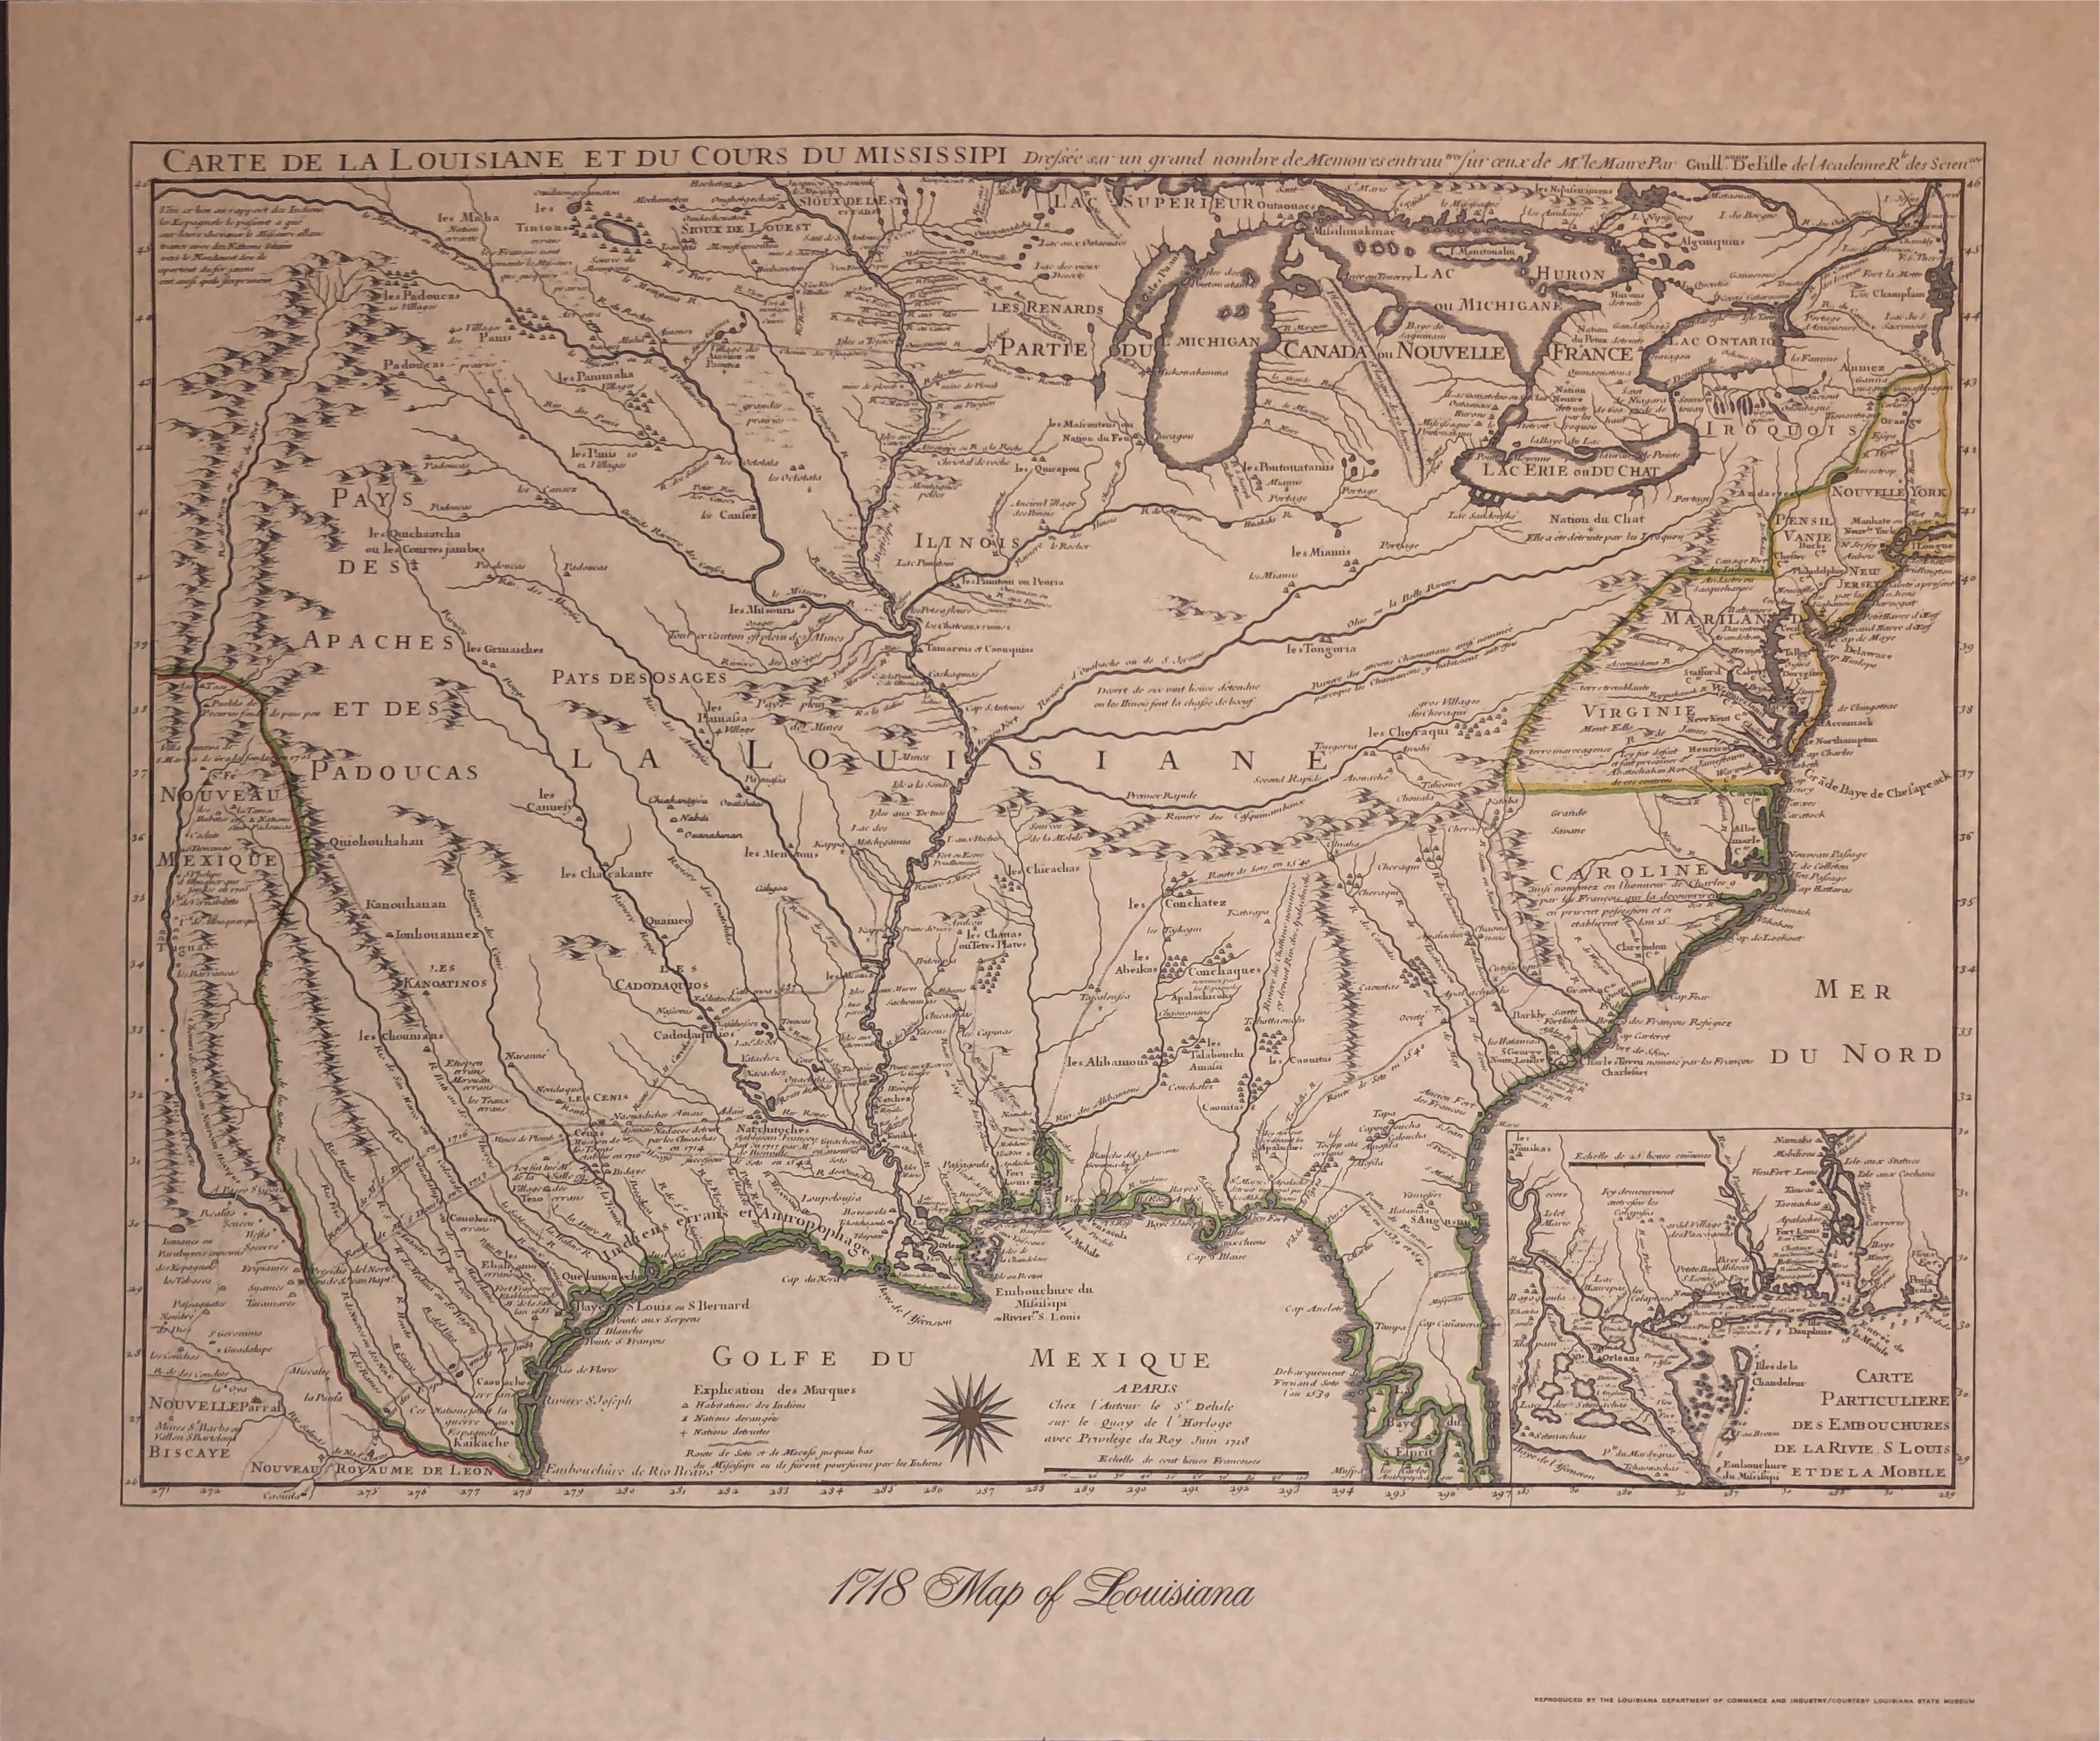 1718 Map of Louisiana-1